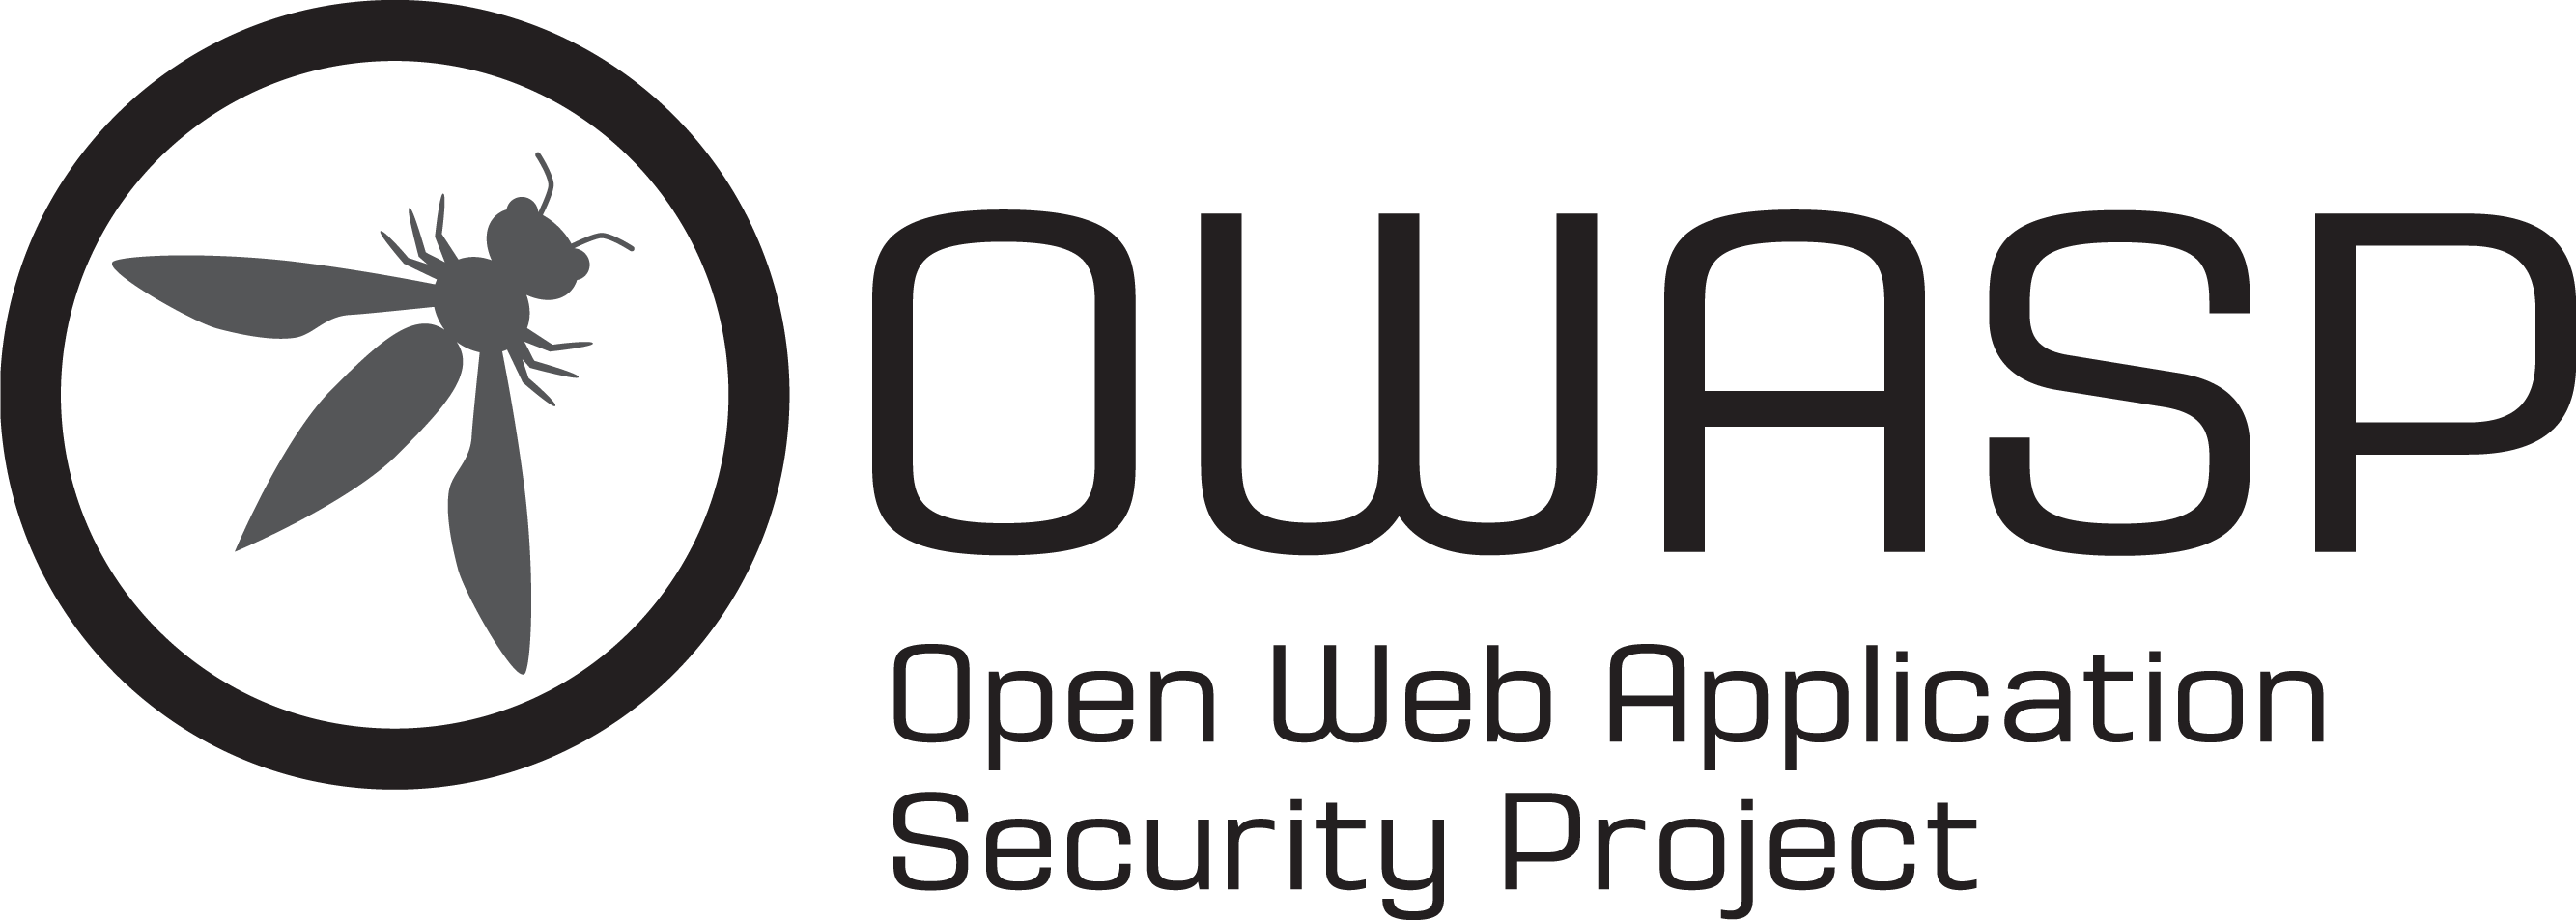 OWASP Firewall Website Protection